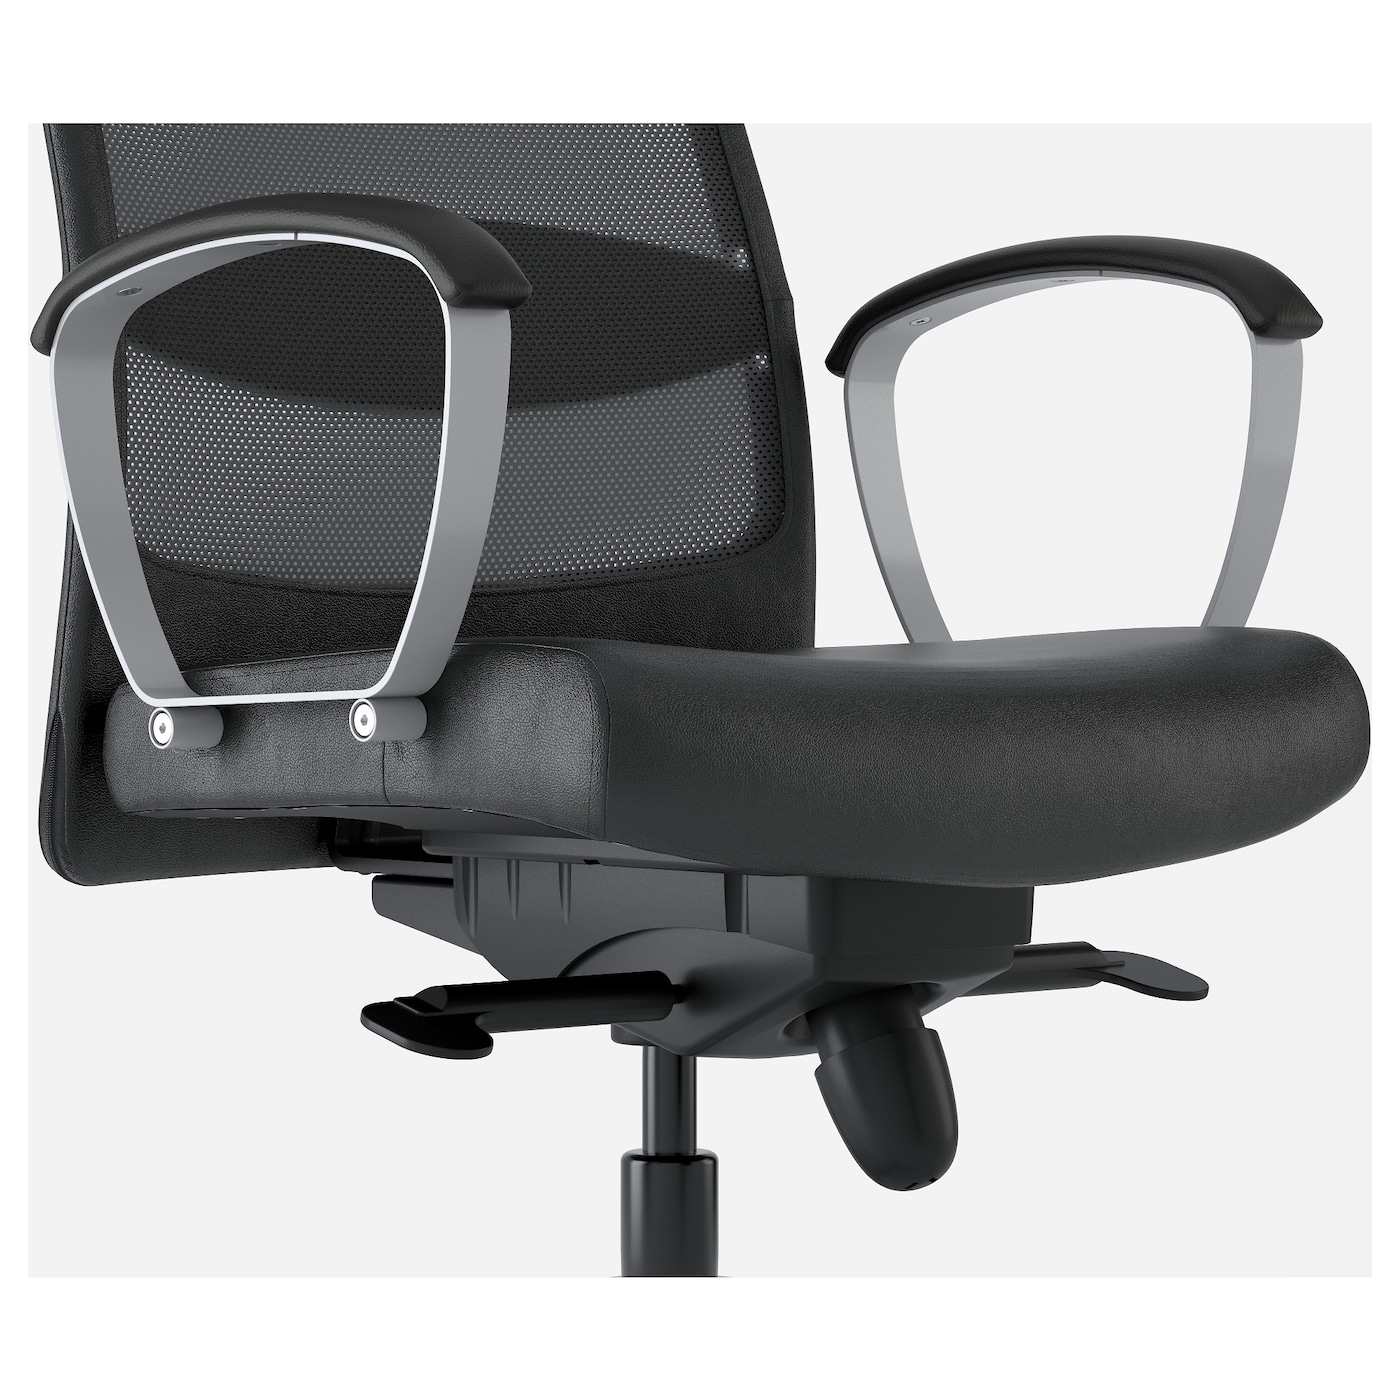 Ikea Markus Swivel Chair 10 Year Guarantee Read About The Terms In Brochure